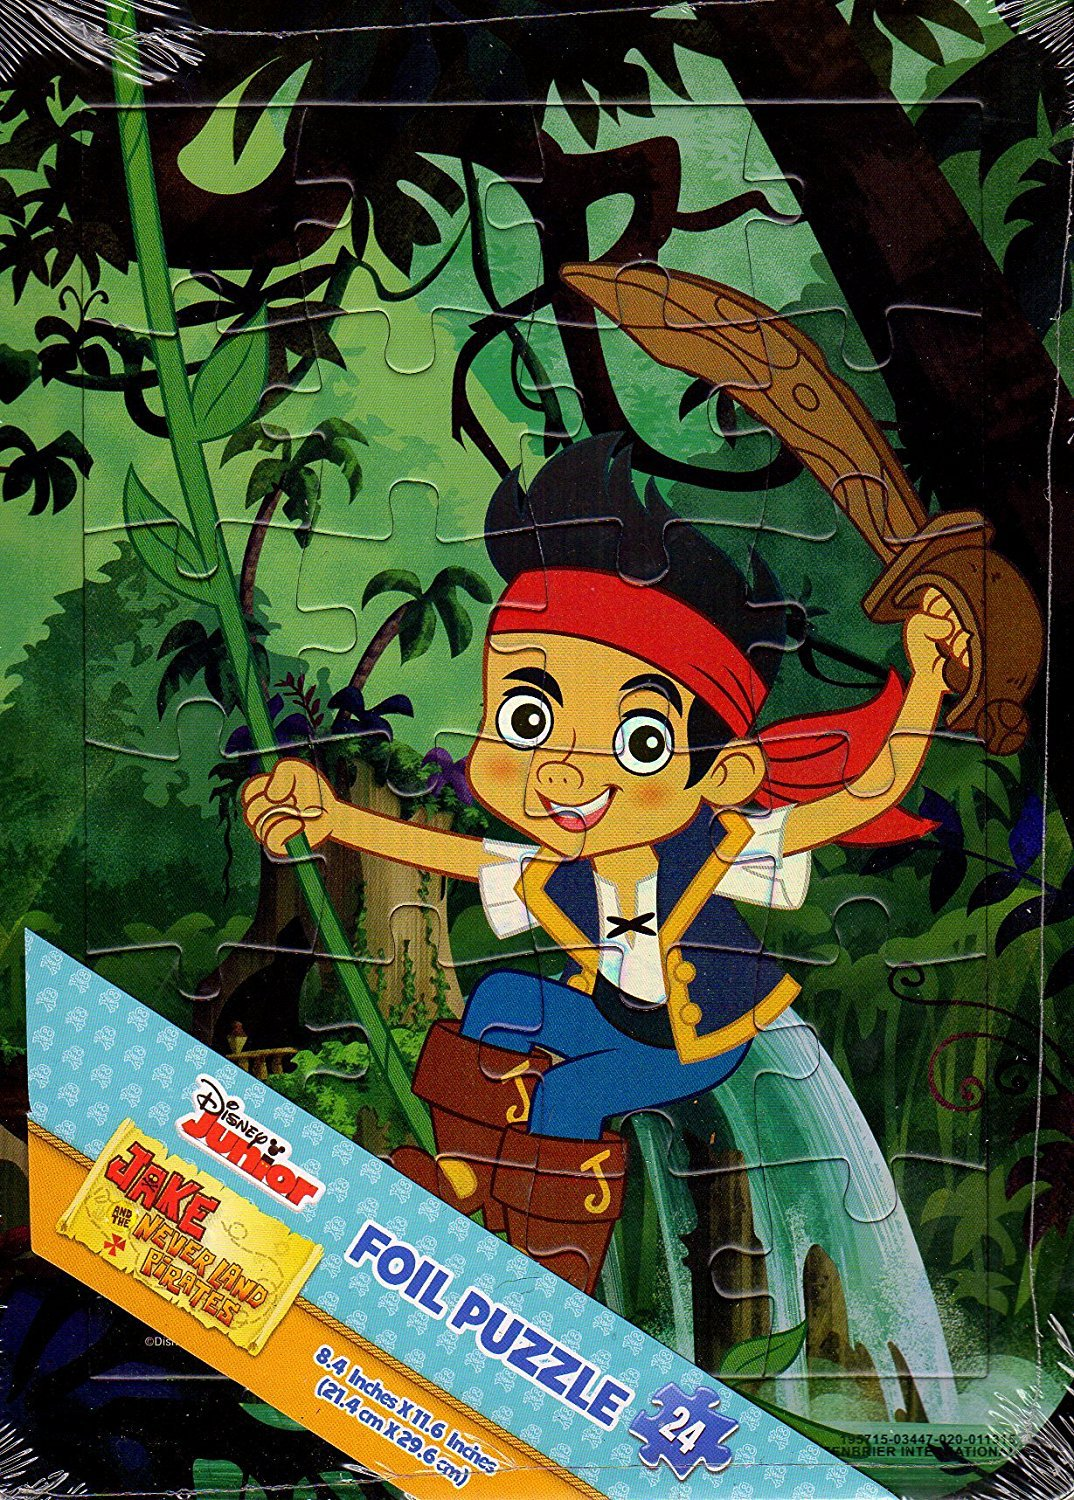 Jake and the Never Land Pirates - 24 Pieces Foil Jigsaw Puzzle - V2